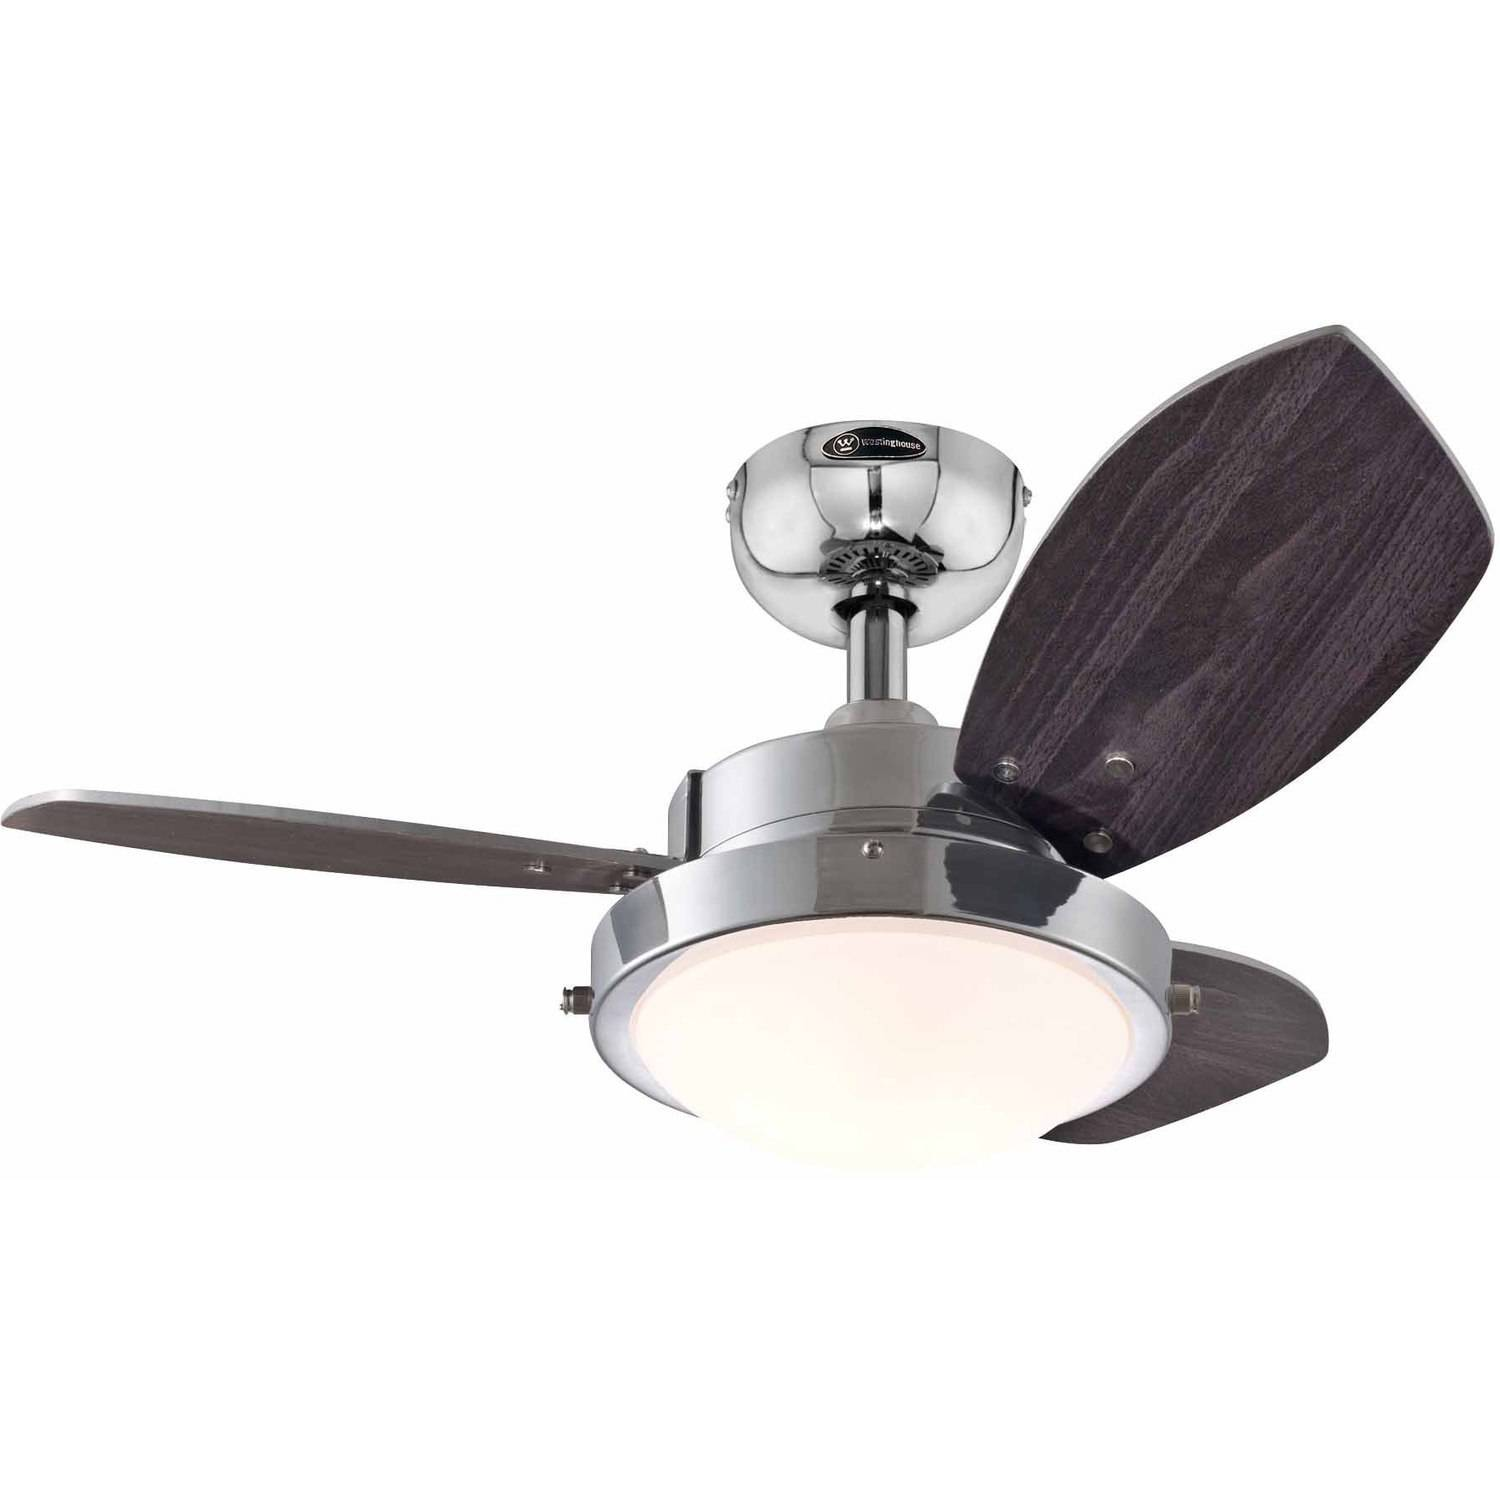 "Westinghouse 7876300 30"" Chrome 3-Blade Reversible Ceiling Fan with Light"